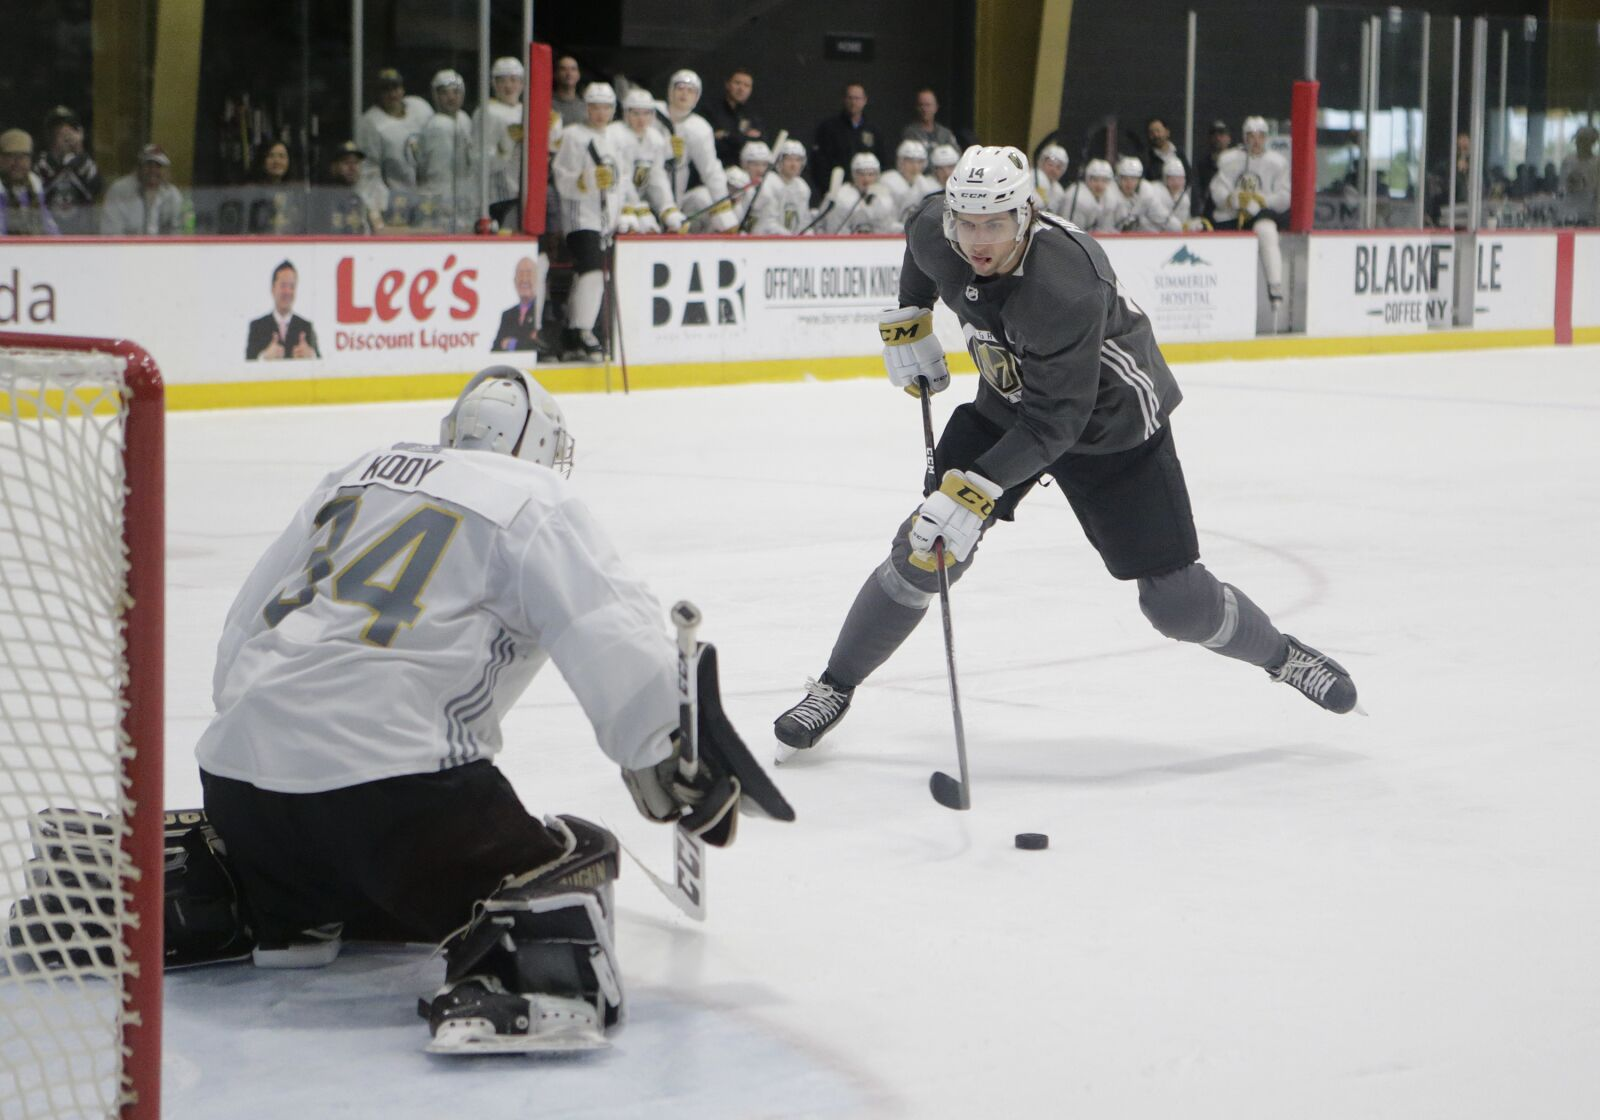 Vegas Golden Knights: Nic Hague on a mission heading into training camp